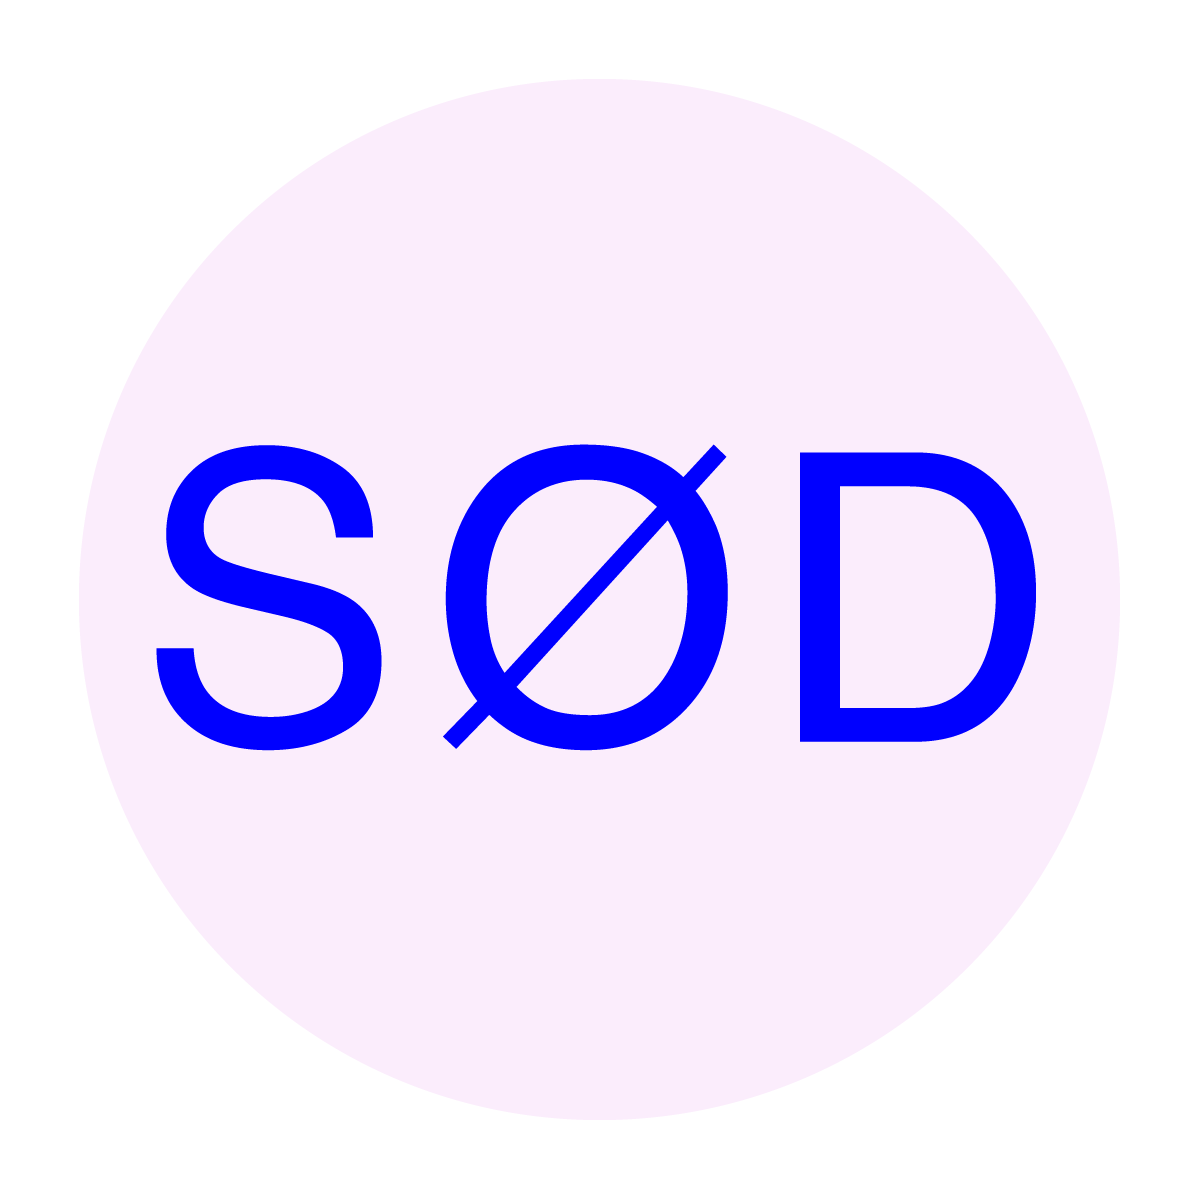 SØD logo in text